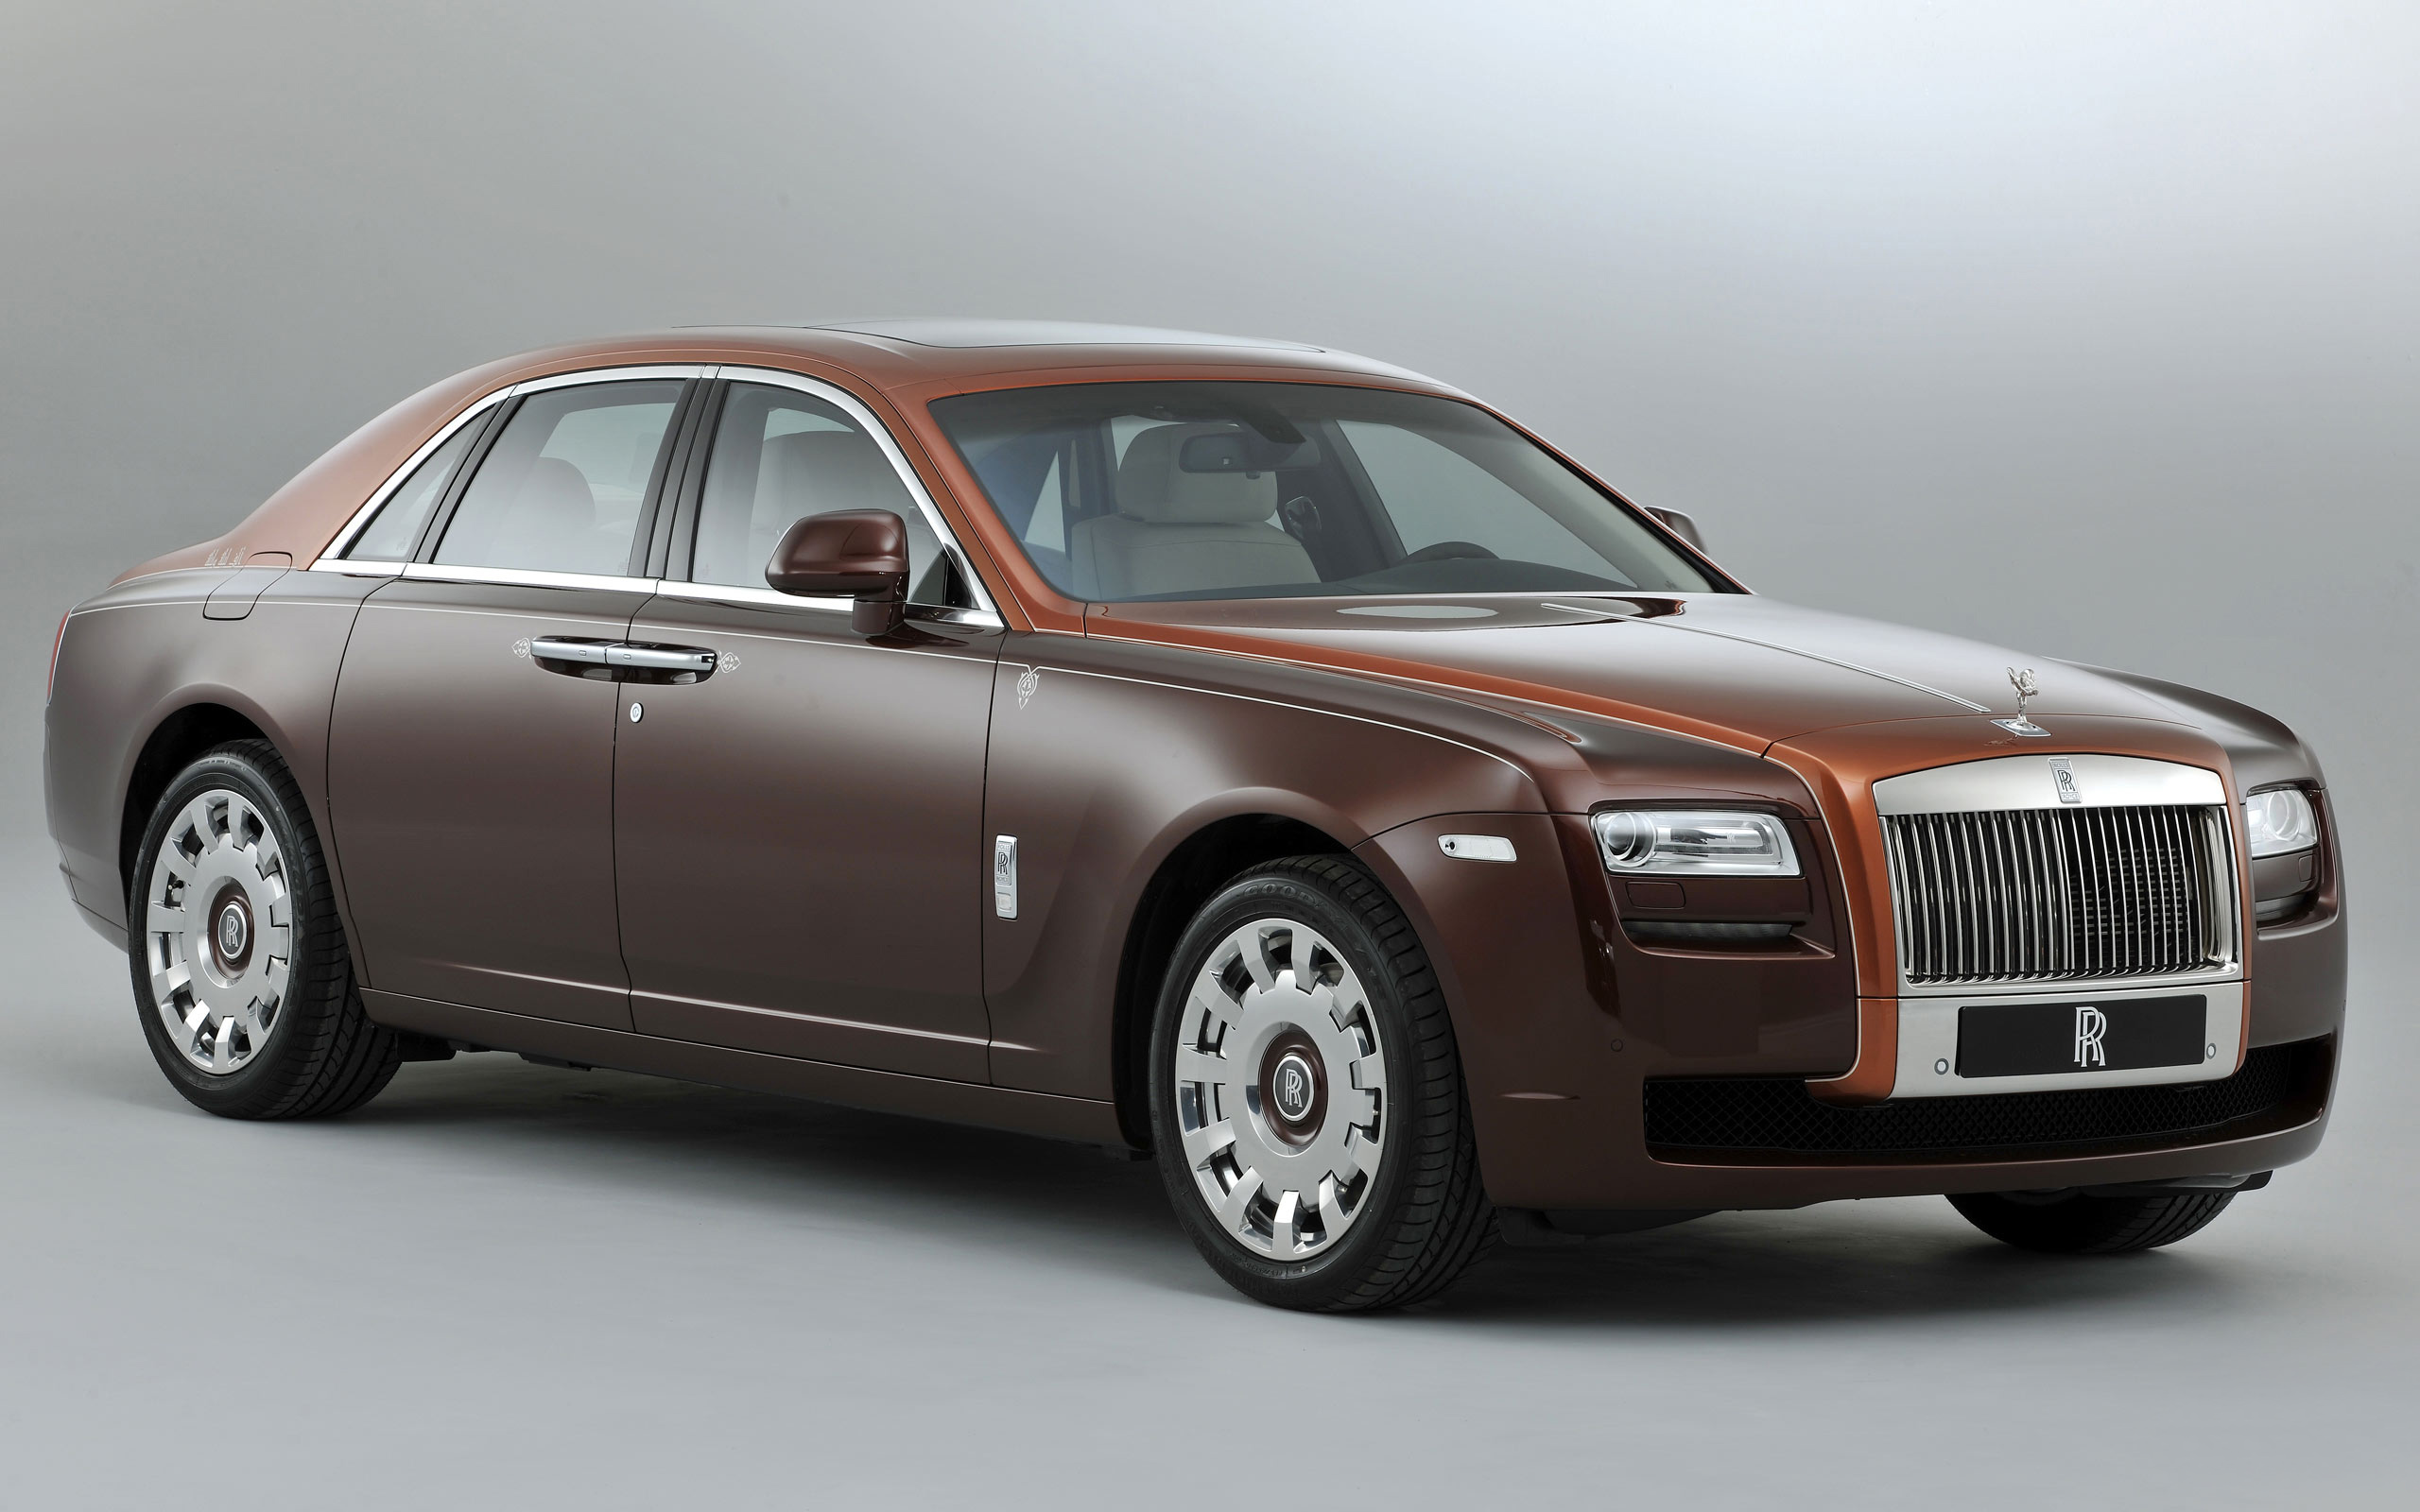 2013 rolls royce ghost one thousand and one nights wallpaper hd car wallpapers. Black Bedroom Furniture Sets. Home Design Ideas